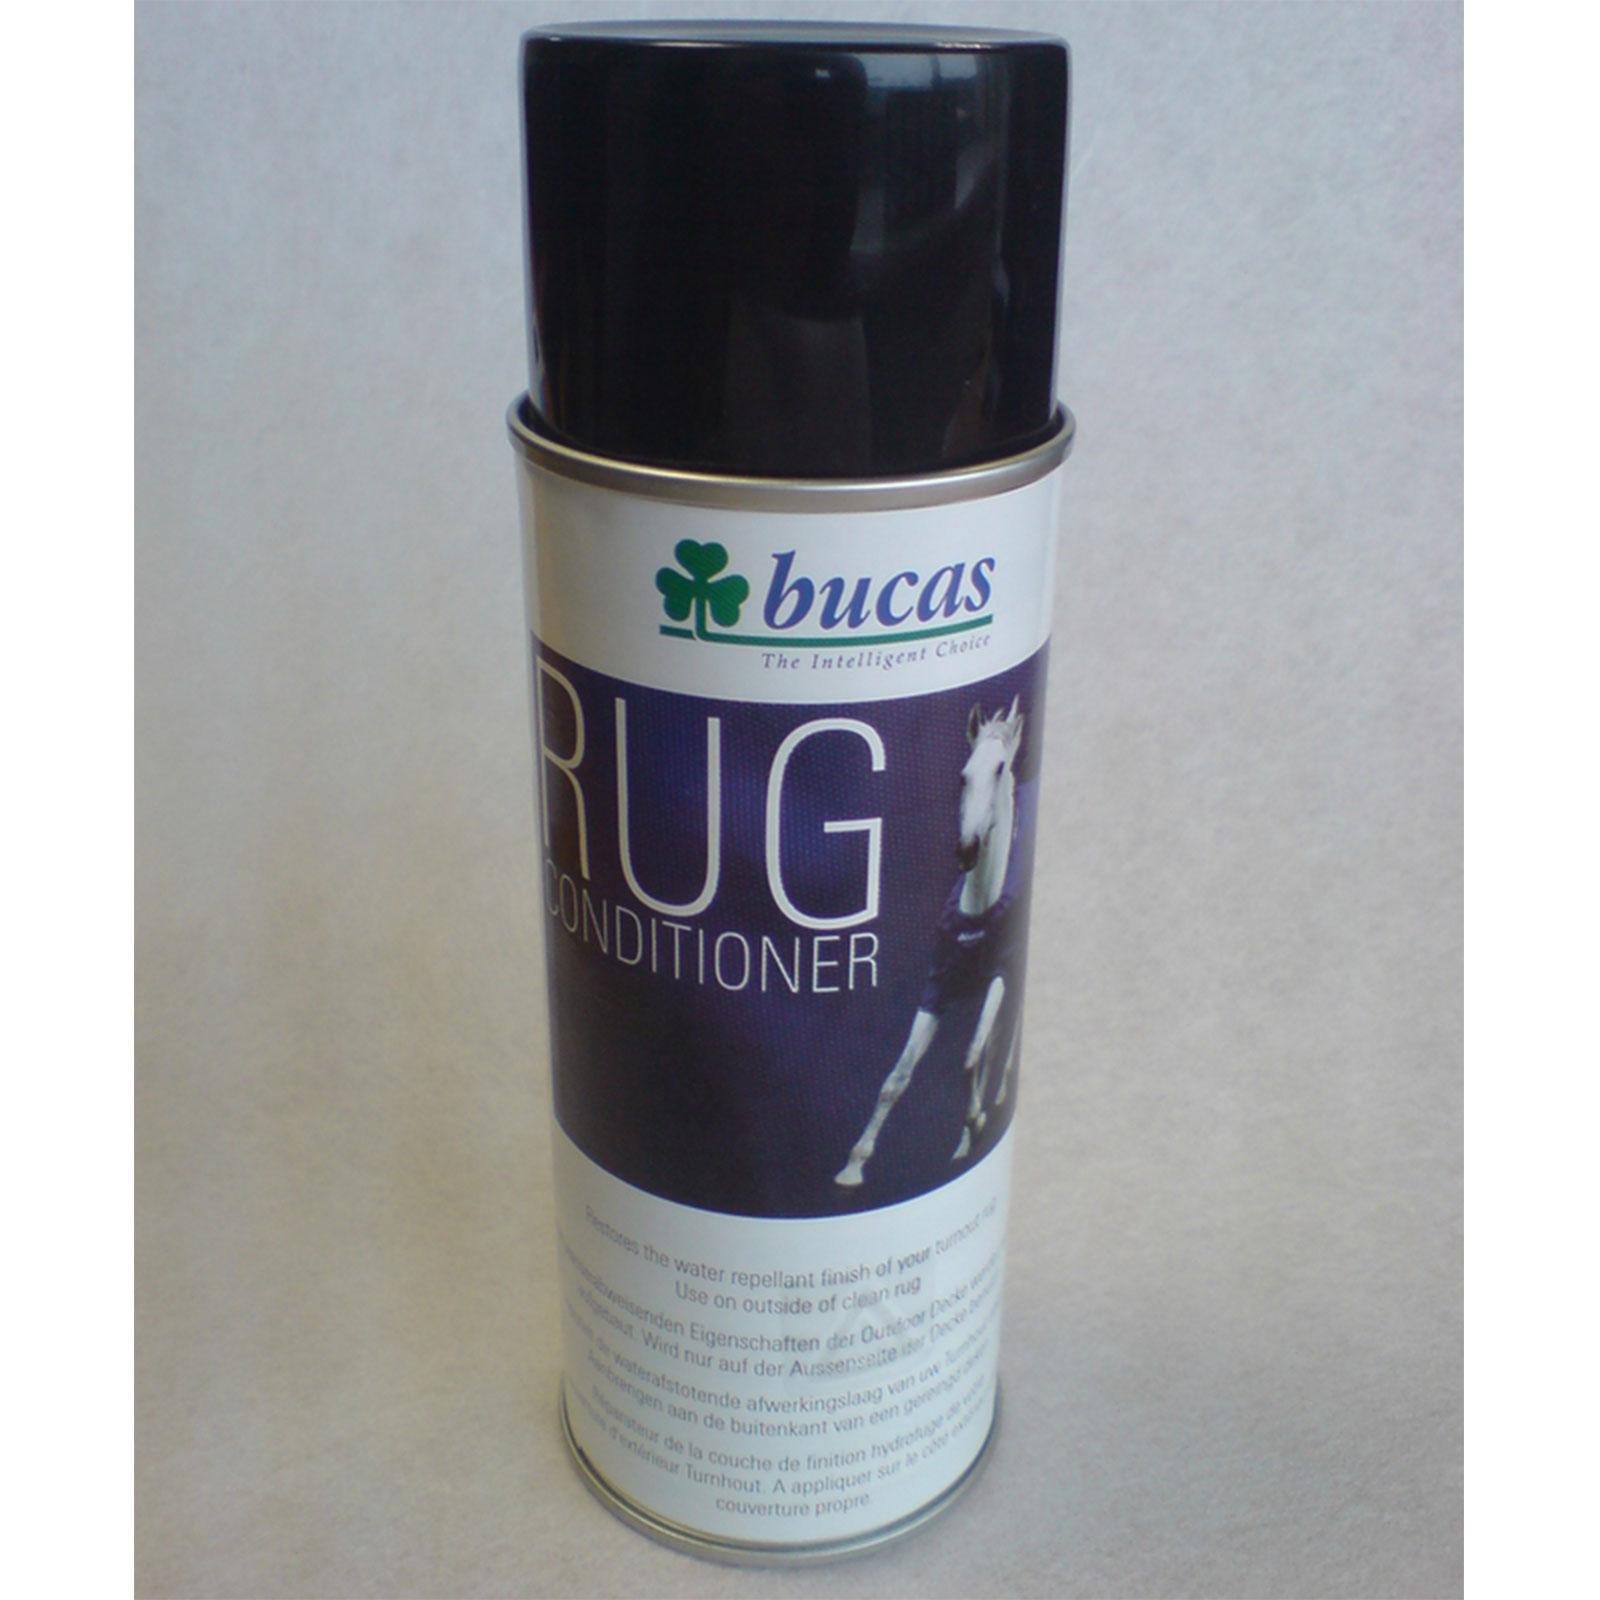 Bucas Rug Conditioner täckesimpregnering.